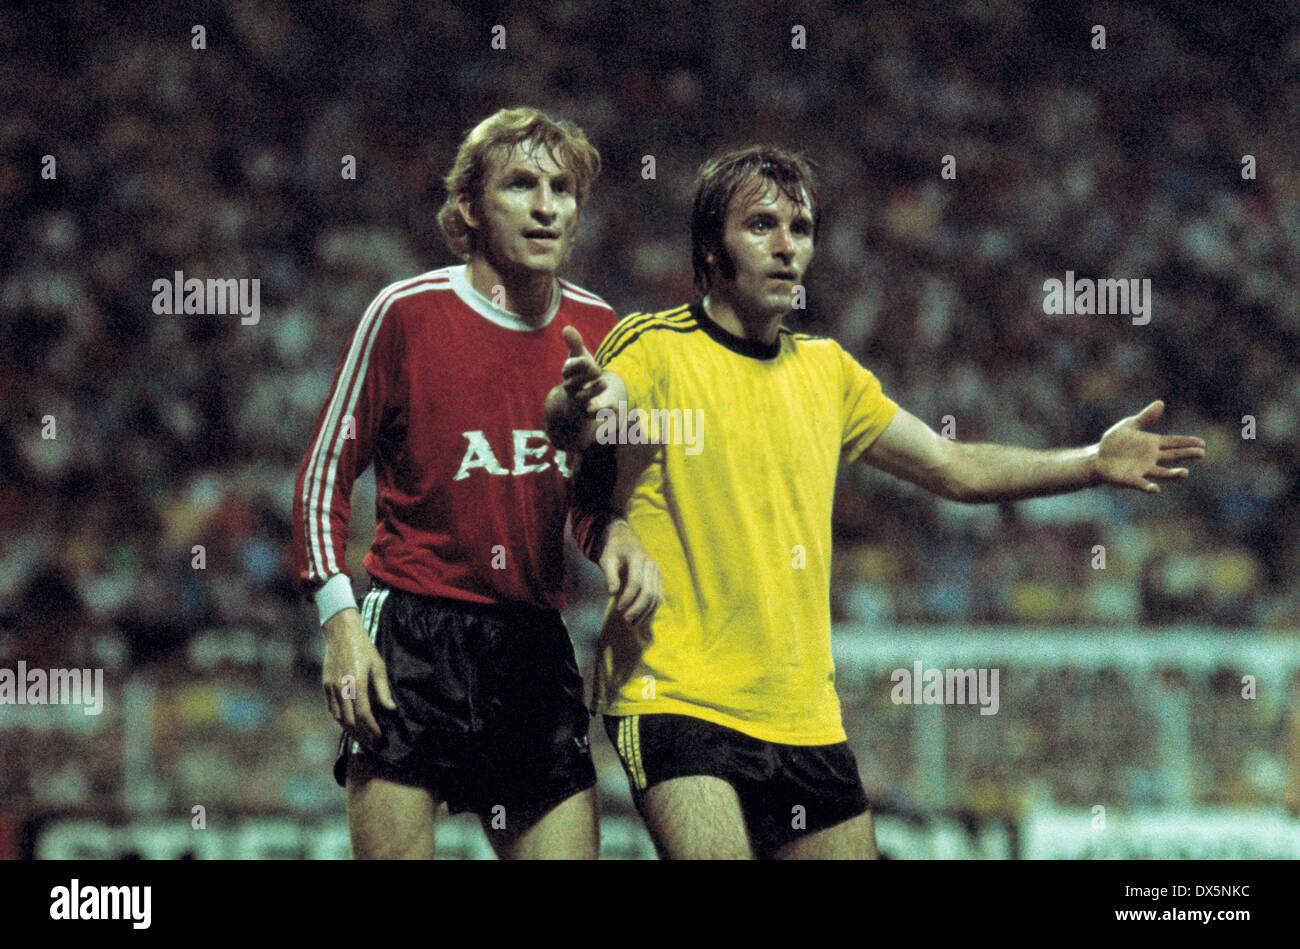 football, 2. Bundesliga Nord, 2. Bundesliga Sued, 1975/1976, relegation match to Bundesliga 1976/1977, return leg, Westfalen Stadium, Borussia Dortmund versus 1. FC Nuremberg 3:2, scene of the match, Manfred Ruesing (FCN) left and Hans-Werner Hartl (BVB) - Stock Image